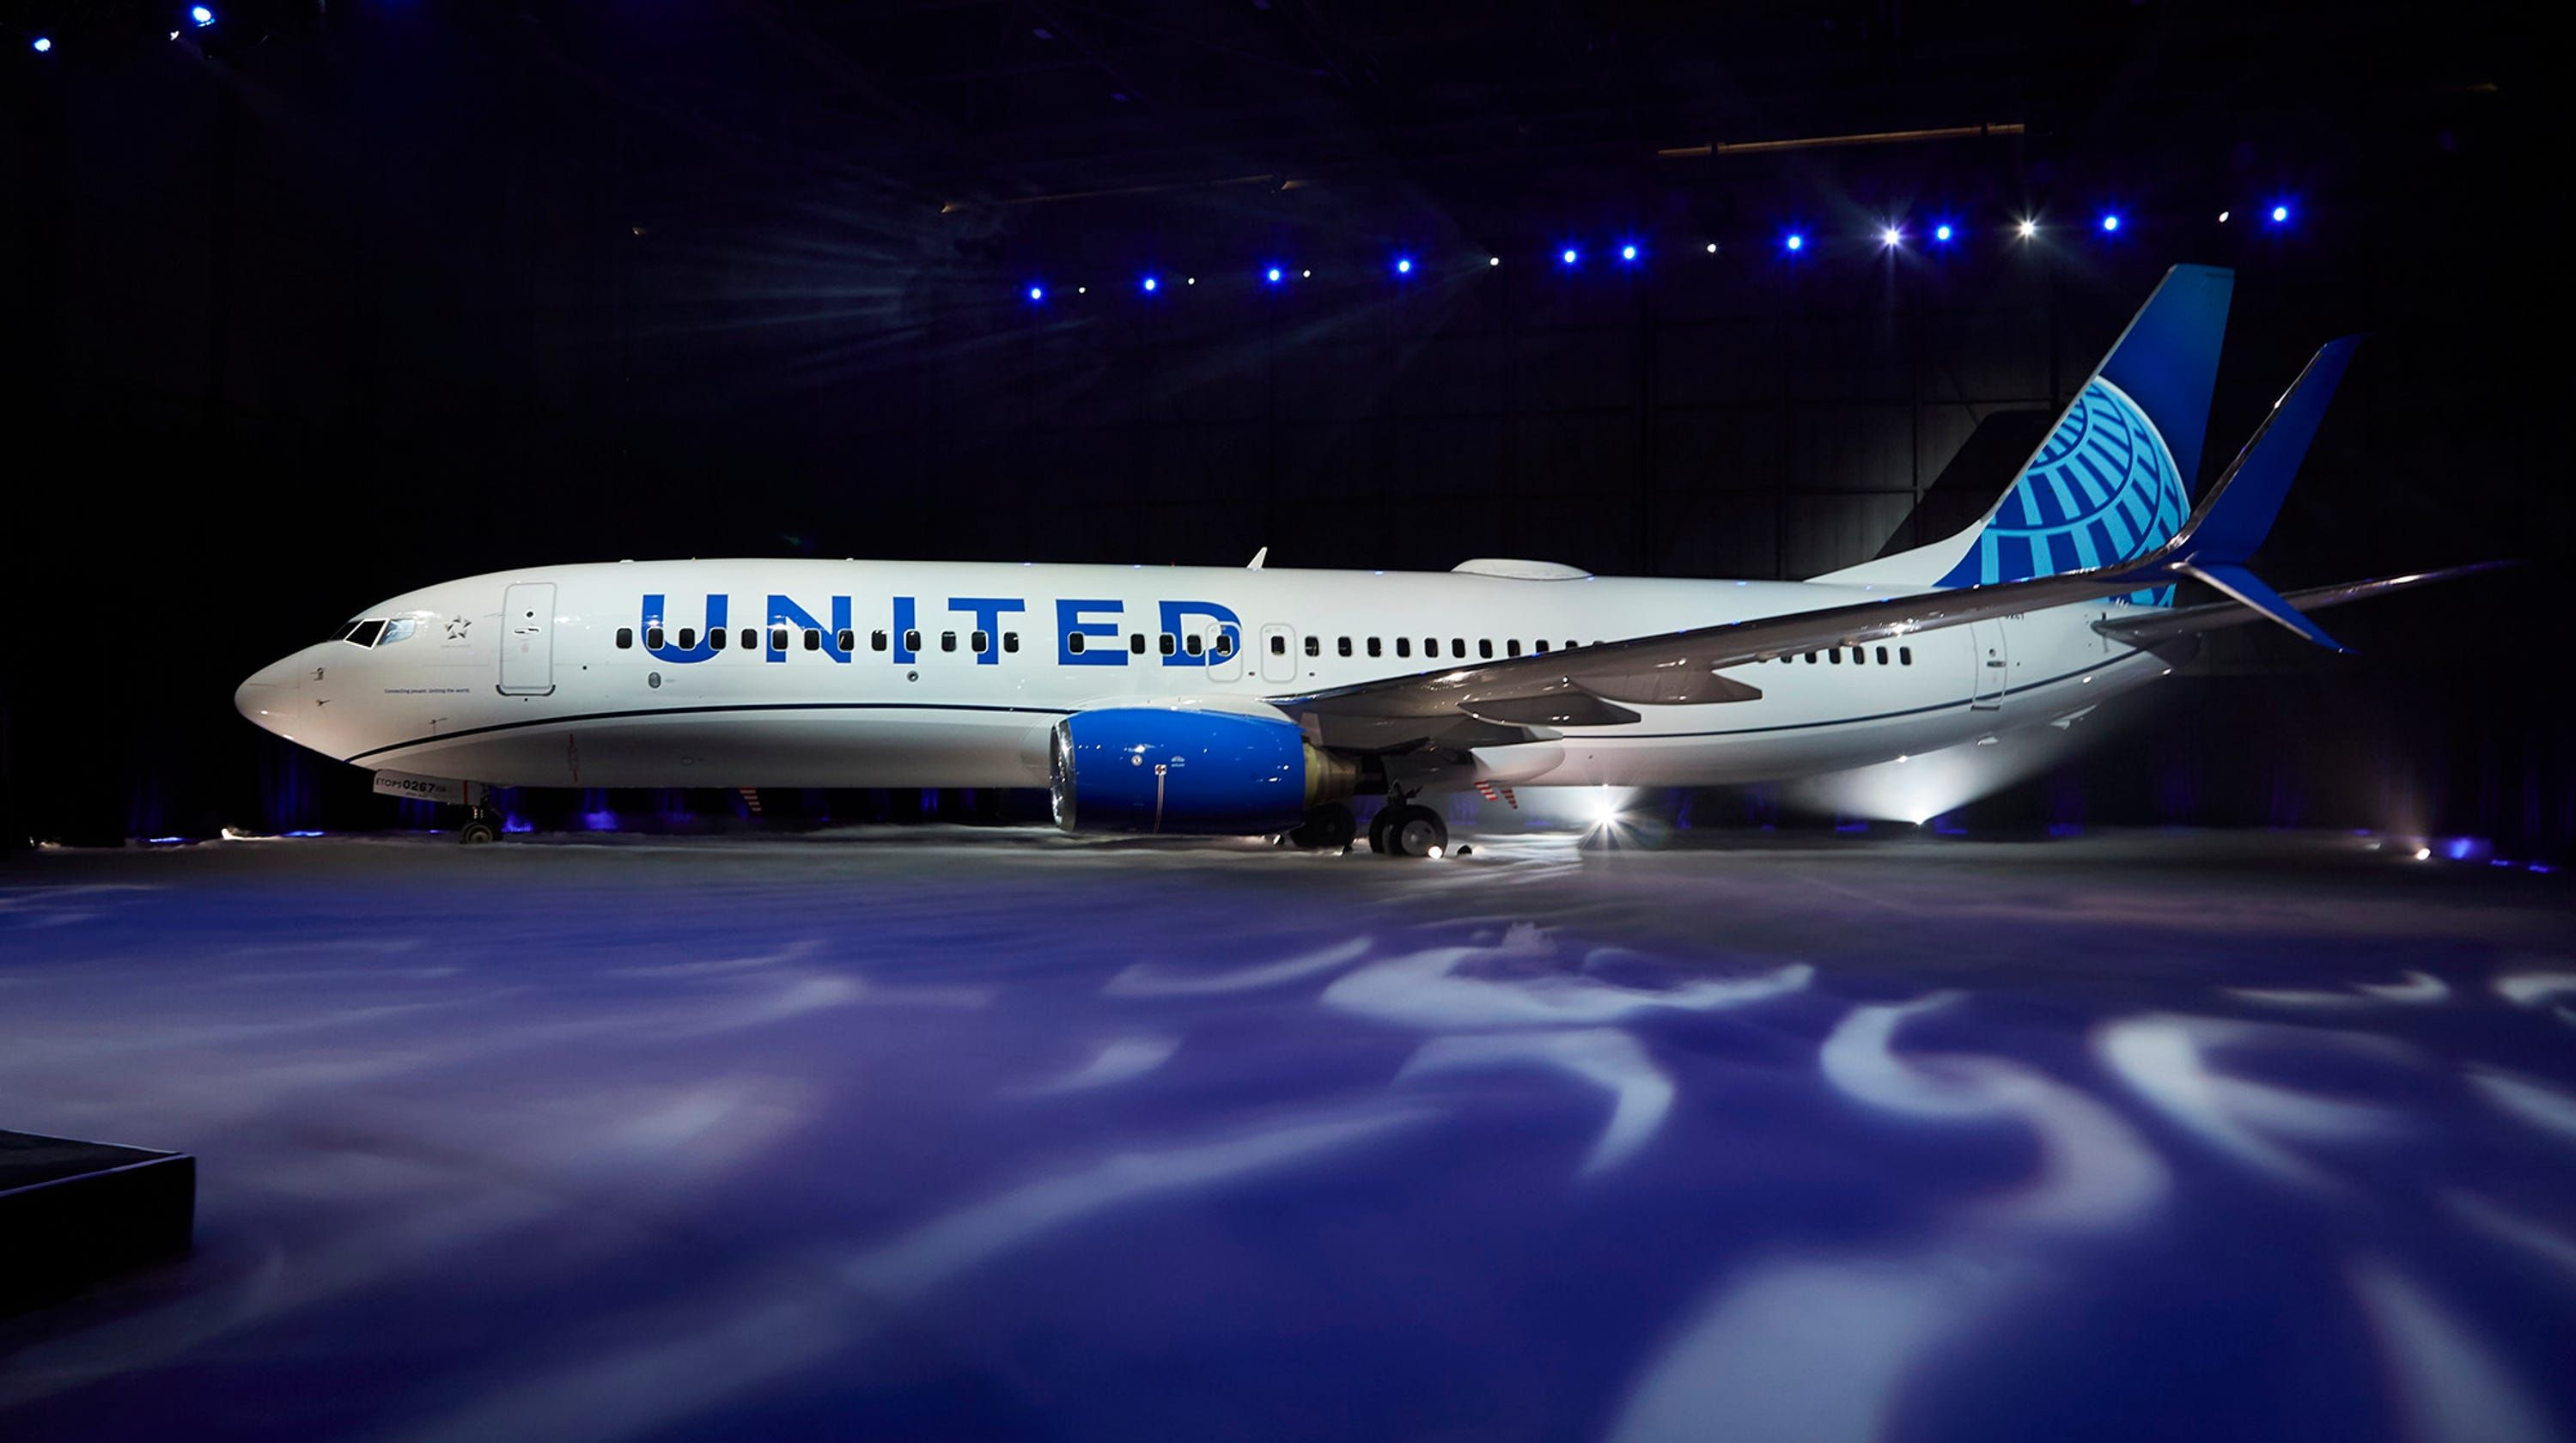 Grab some latest deals with lowest prices on United